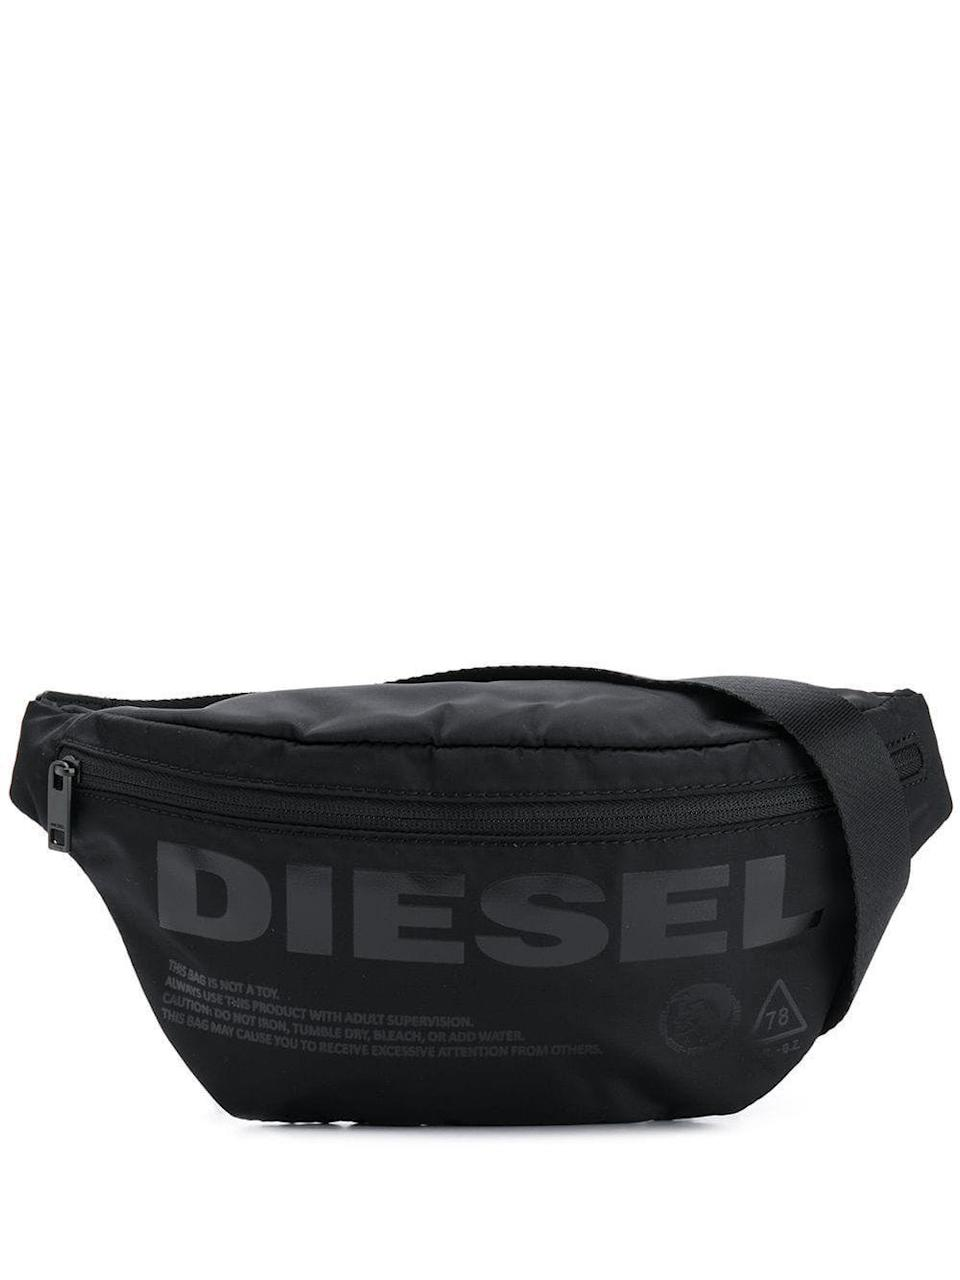 """<p><strong>Diesel</strong></p><p>farfetch.com</p><p><strong>$78.00</strong></p><p><a href=""""https://go.redirectingat.com?id=74968X1596630&url=https%3A%2F%2Fwww.farfetch.com%2Fshopping%2Fmen%2Fdiesel-logo-print-belt-bag-item-13530514.aspx&sref=https%3A%2F%2Fwww.seventeen.com%2Flife%2Fg23515577%2Fcool-gifts-for-teen-boys%2F"""" rel=""""nofollow noopener"""" target=""""_blank"""" data-ylk=""""slk:Shop Now"""" class=""""link rapid-noclick-resp"""">Shop Now</a></p><p>A little black fanny pack goes with everything. Trust, he'll be reaching for that bad boy every time he gets dressed.</p>"""